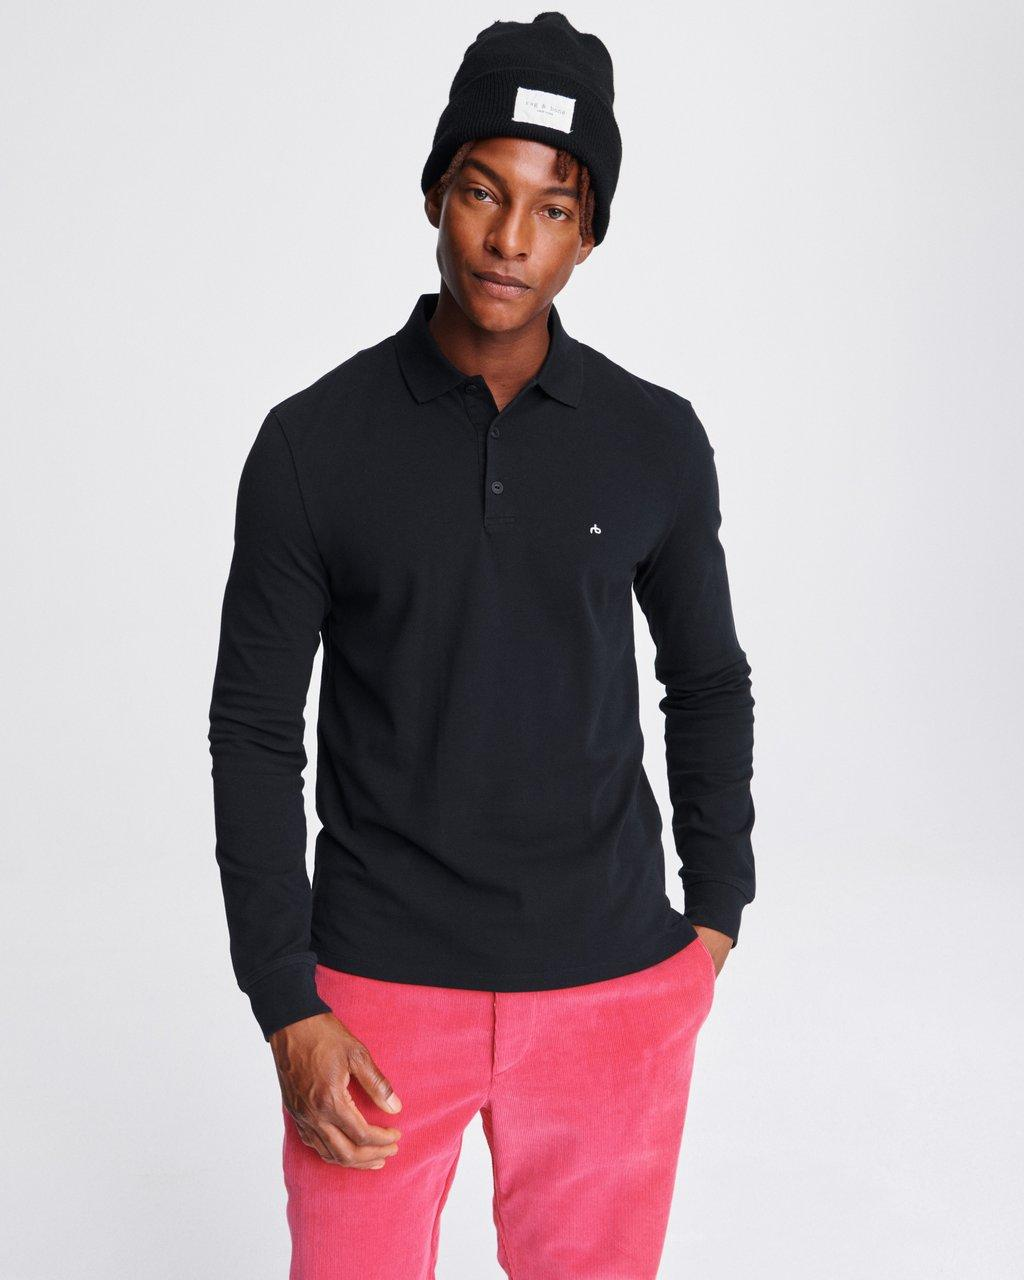 HYPER-LAUNDERED PIQUE POLO LONG SLEEVE